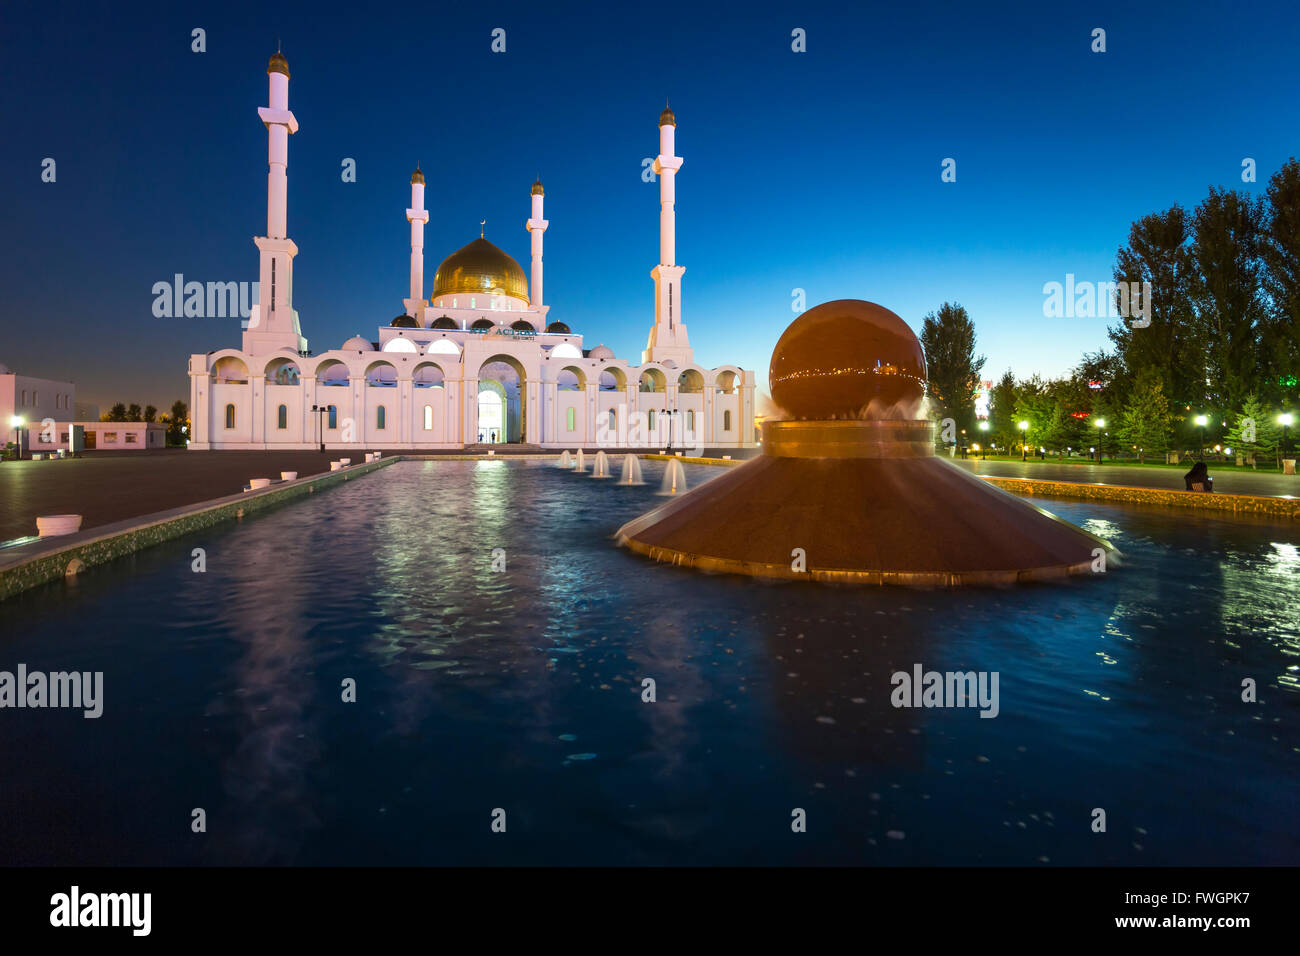 Nur Astana Mosque at dusk, Astana, Kazakhstan, Central Asia - Stock Image